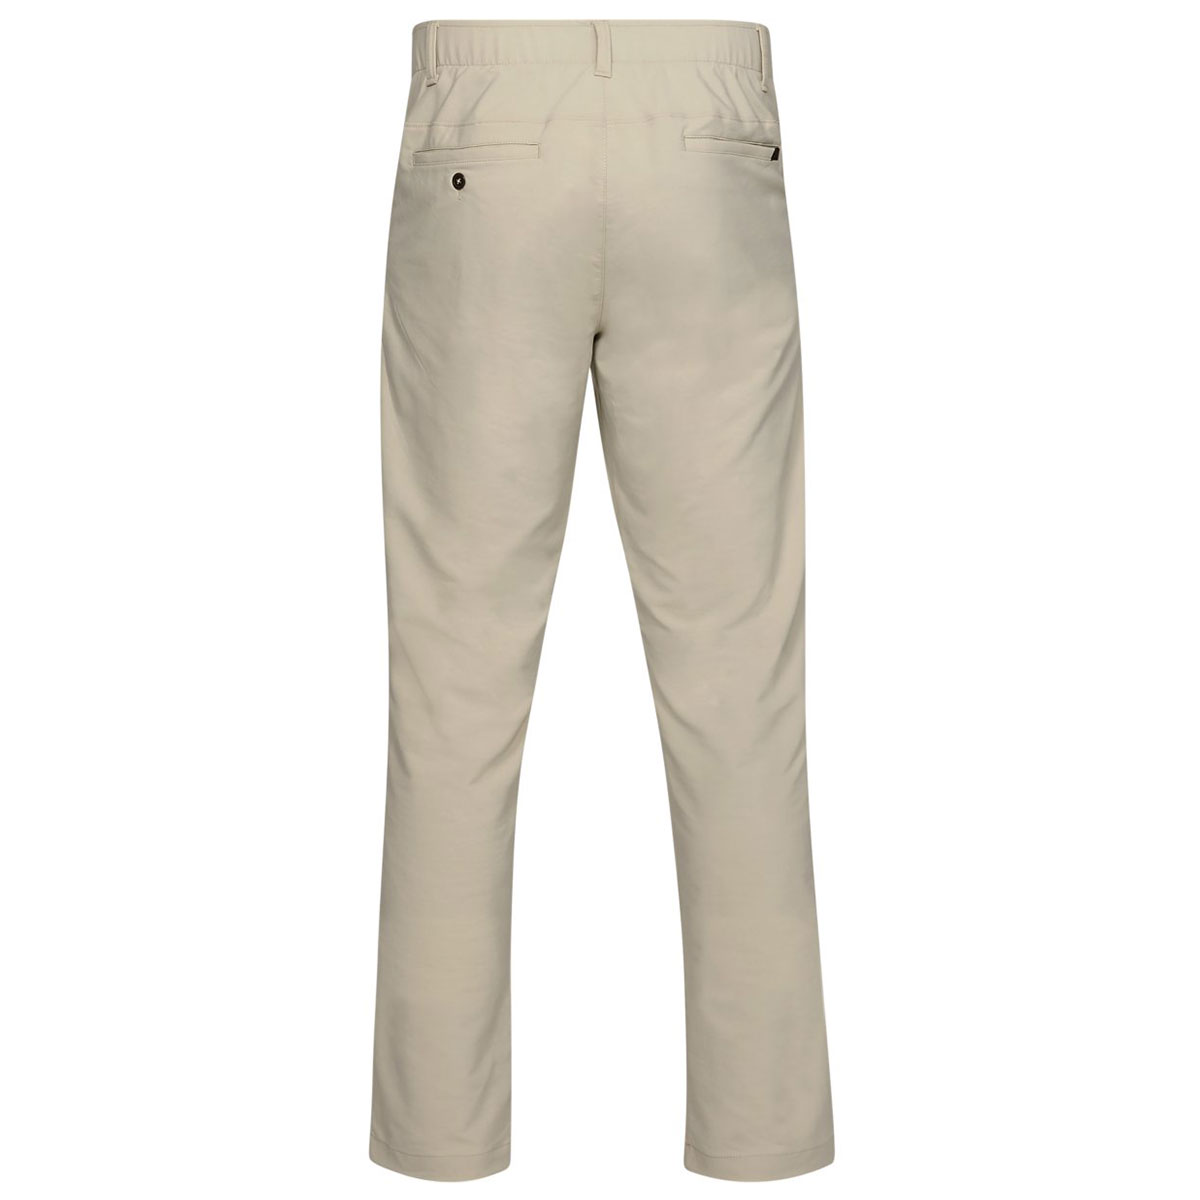 Under-Armour-Mens-2019-EU-Performance-Taper-Soft-Stretch-Golf-Trousers thumbnail 9